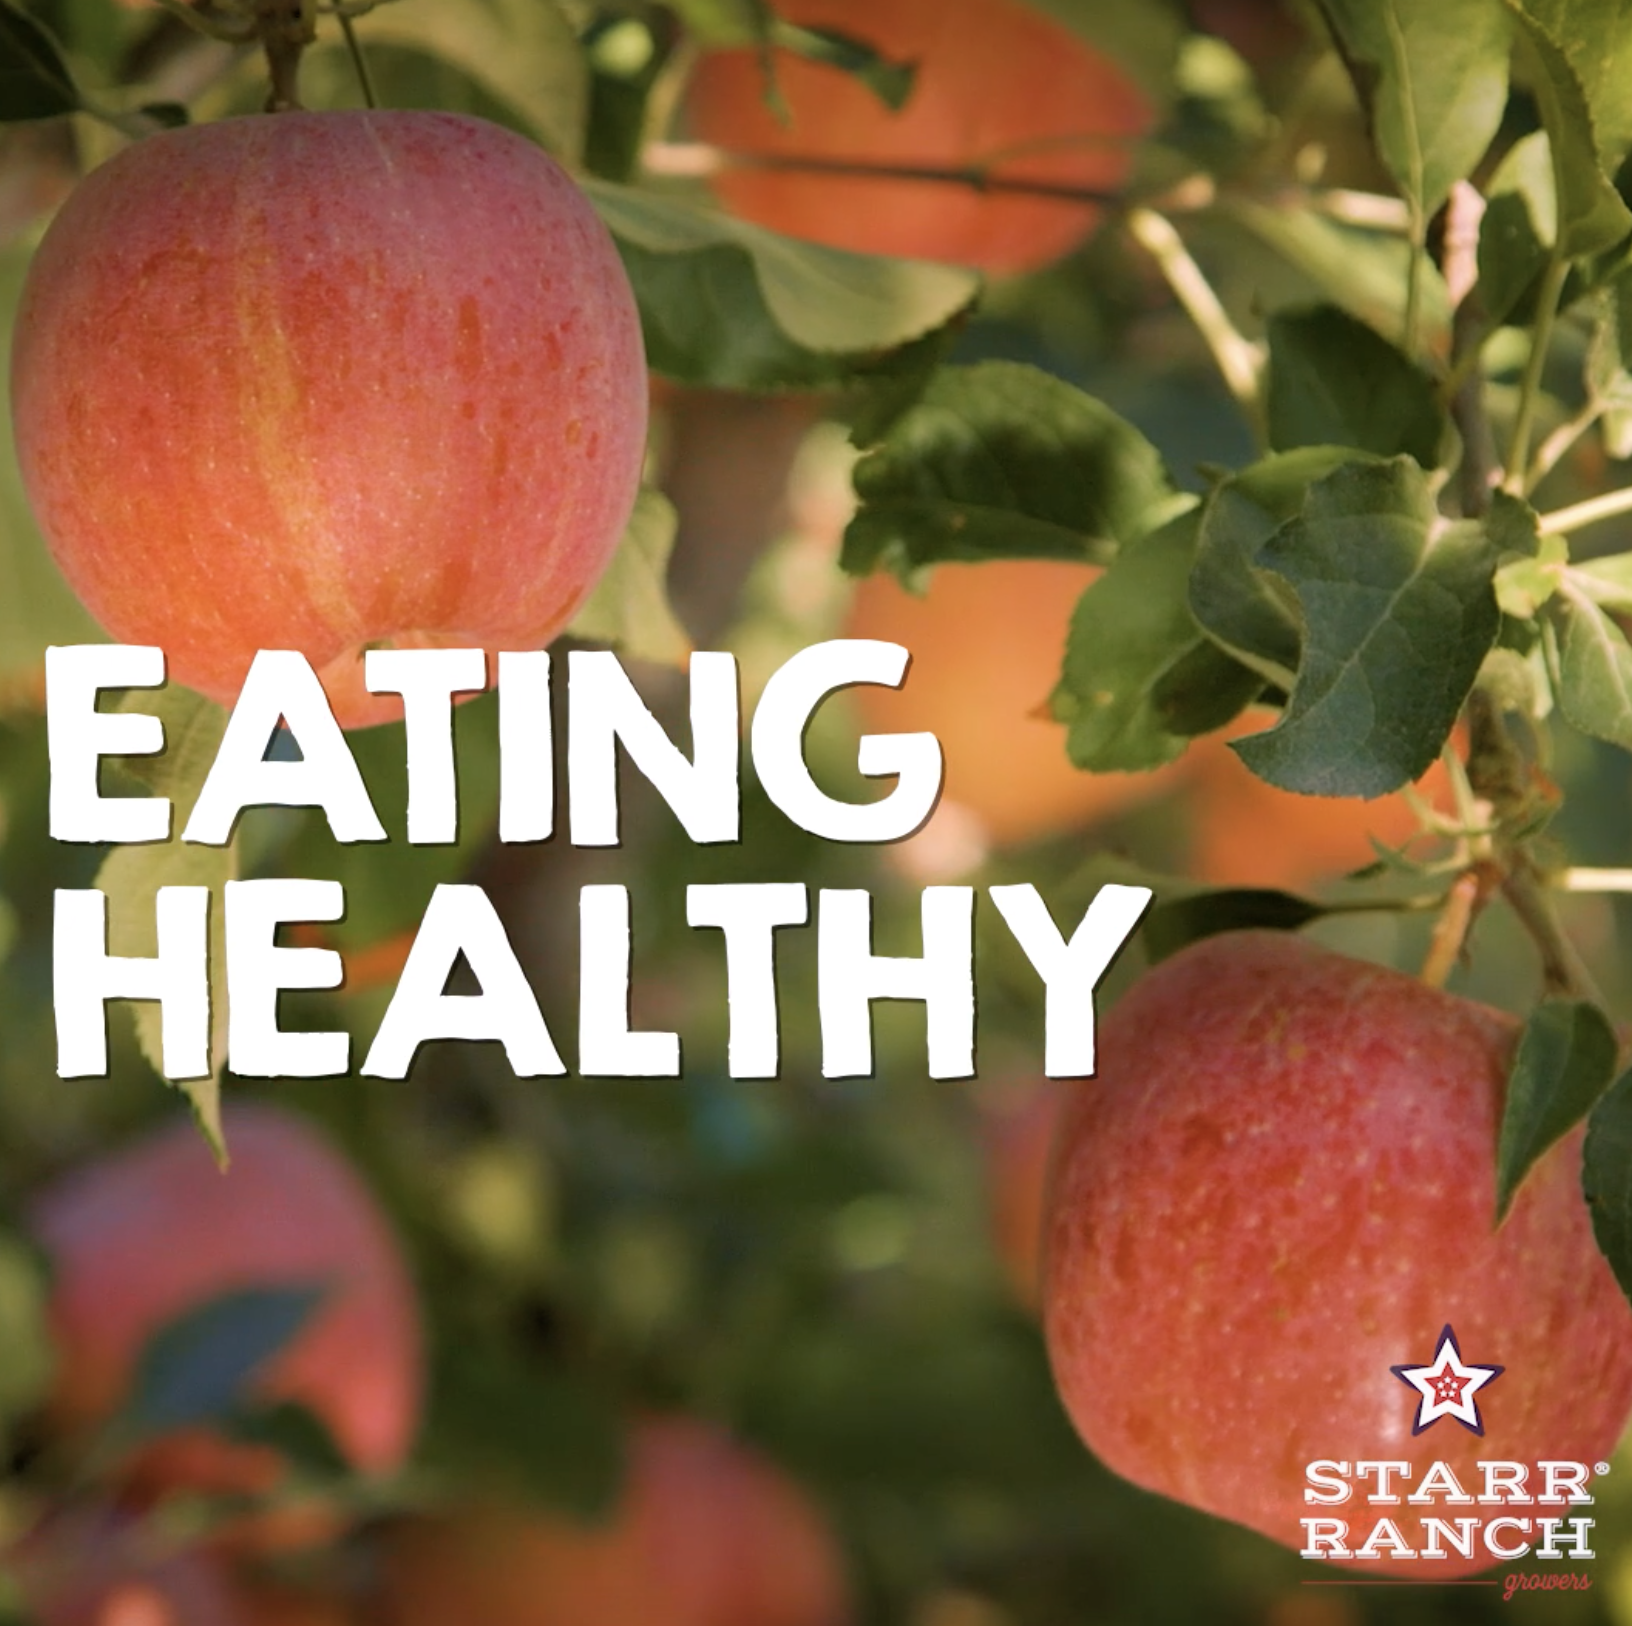 Starr Ranch Growers: Eating Healthy is Delicious!